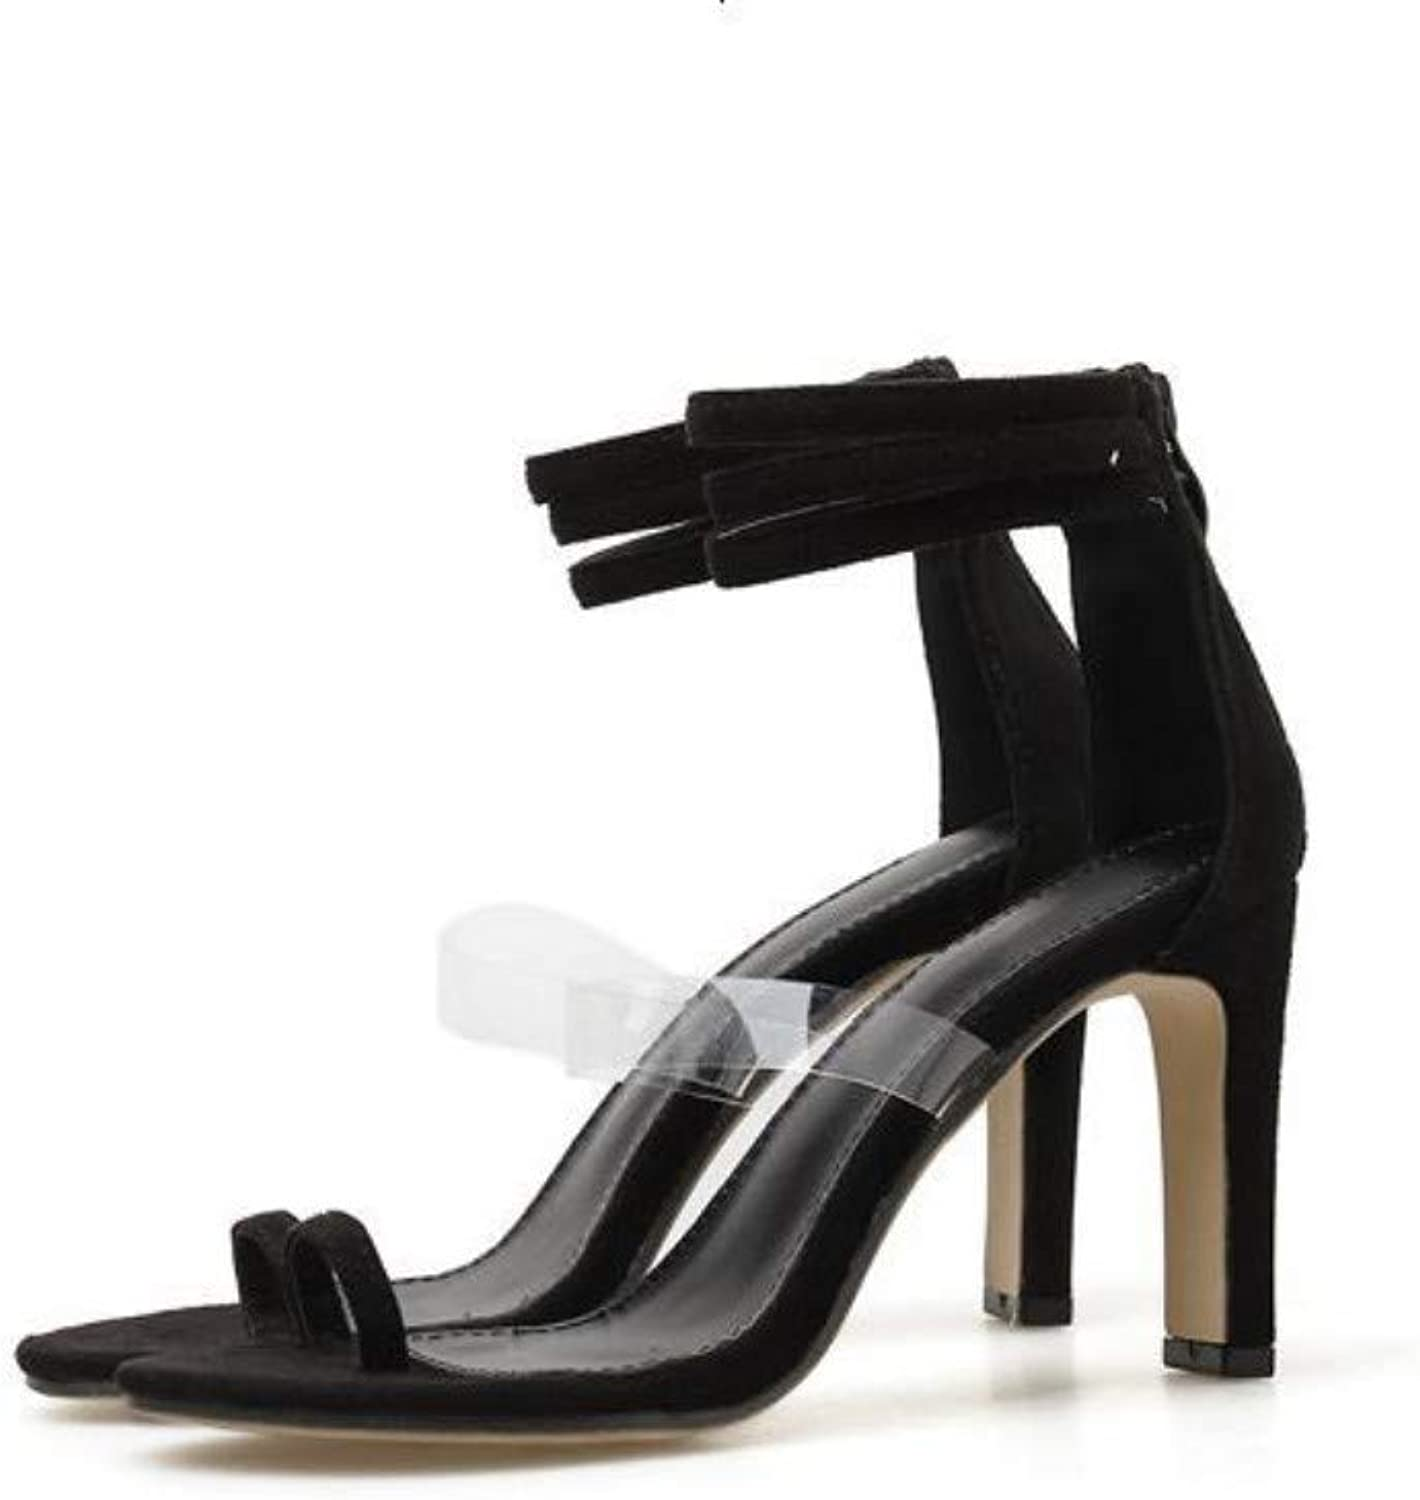 JQfashion Ladies'High-Heeled shoes Transparent Calcium Clamped Toes High-Heeled Sandals Roman shoes